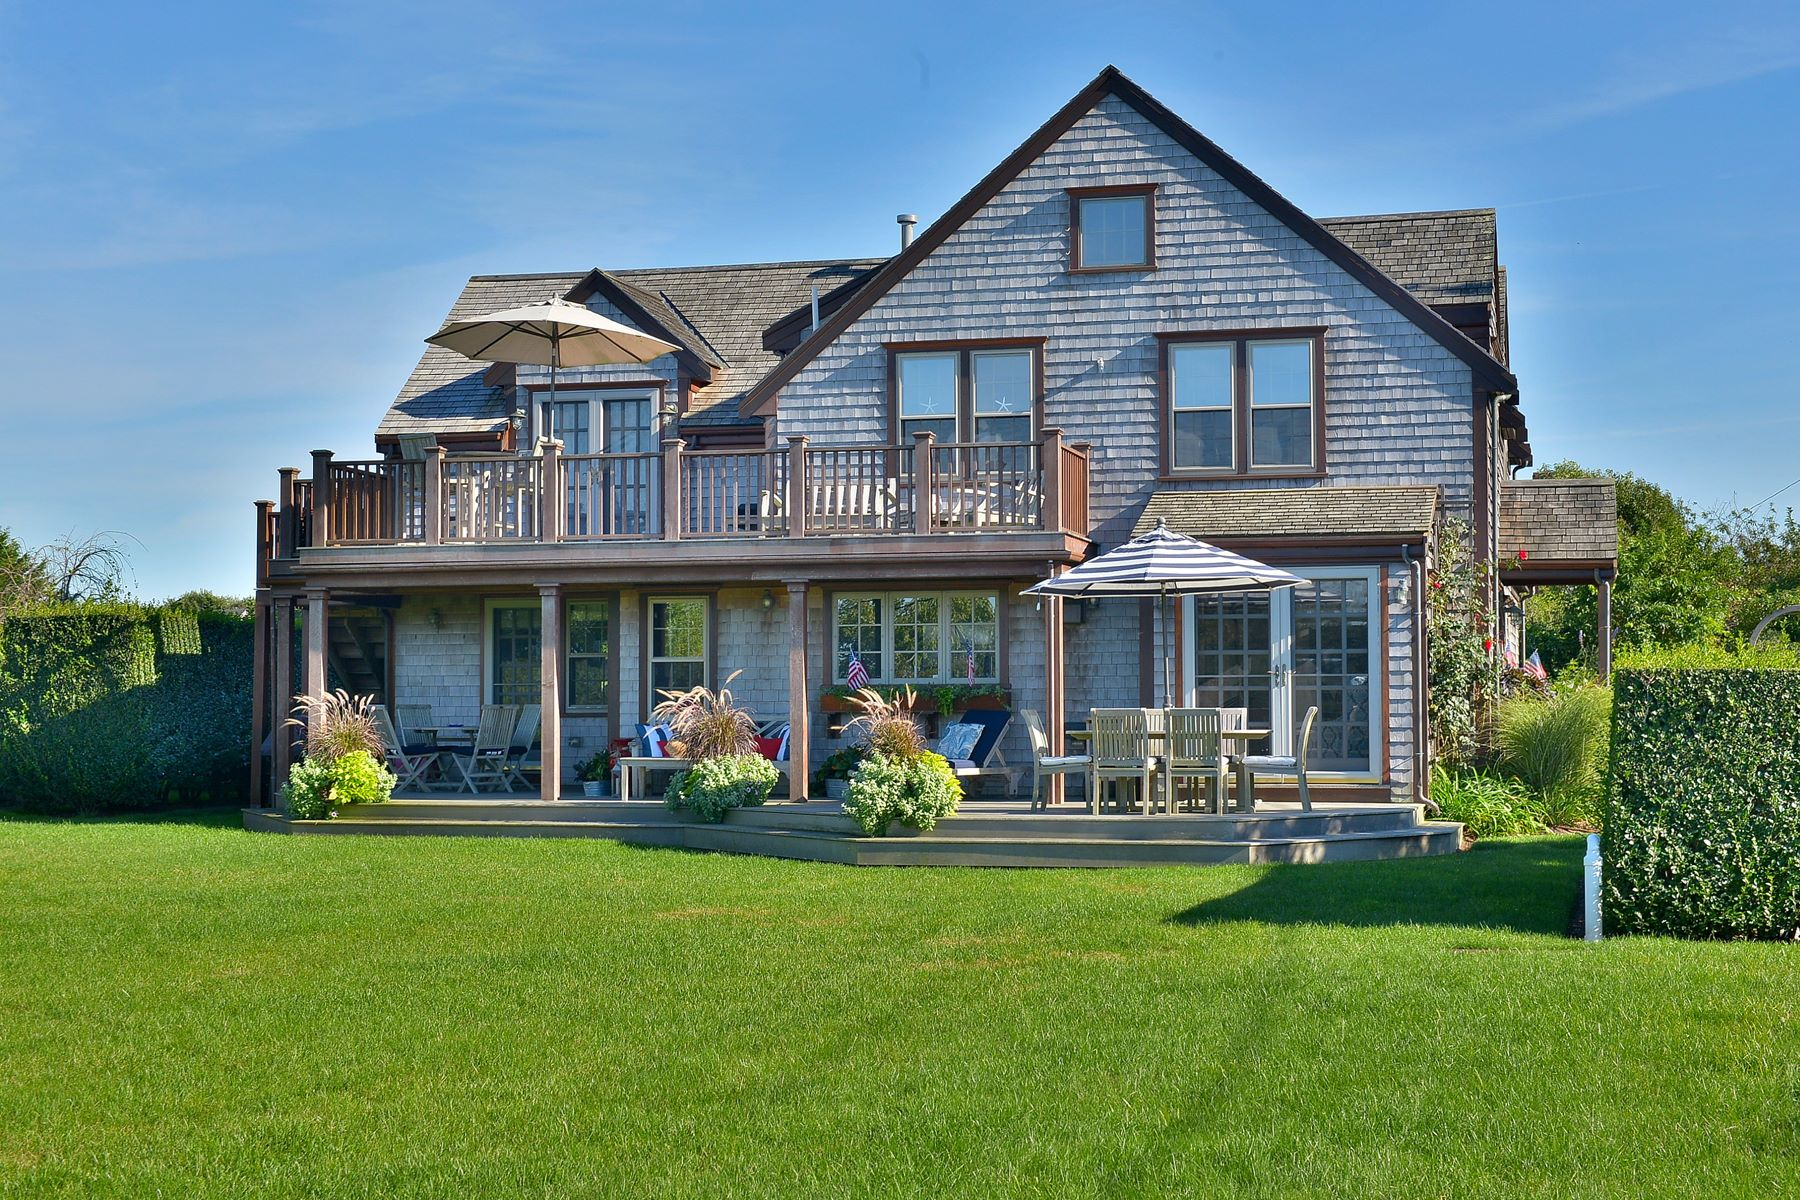 Single Family Home for Sale at The Charm and Delight of Madaket 5 H Street Nantucket, Massachusetts, 02554 United States